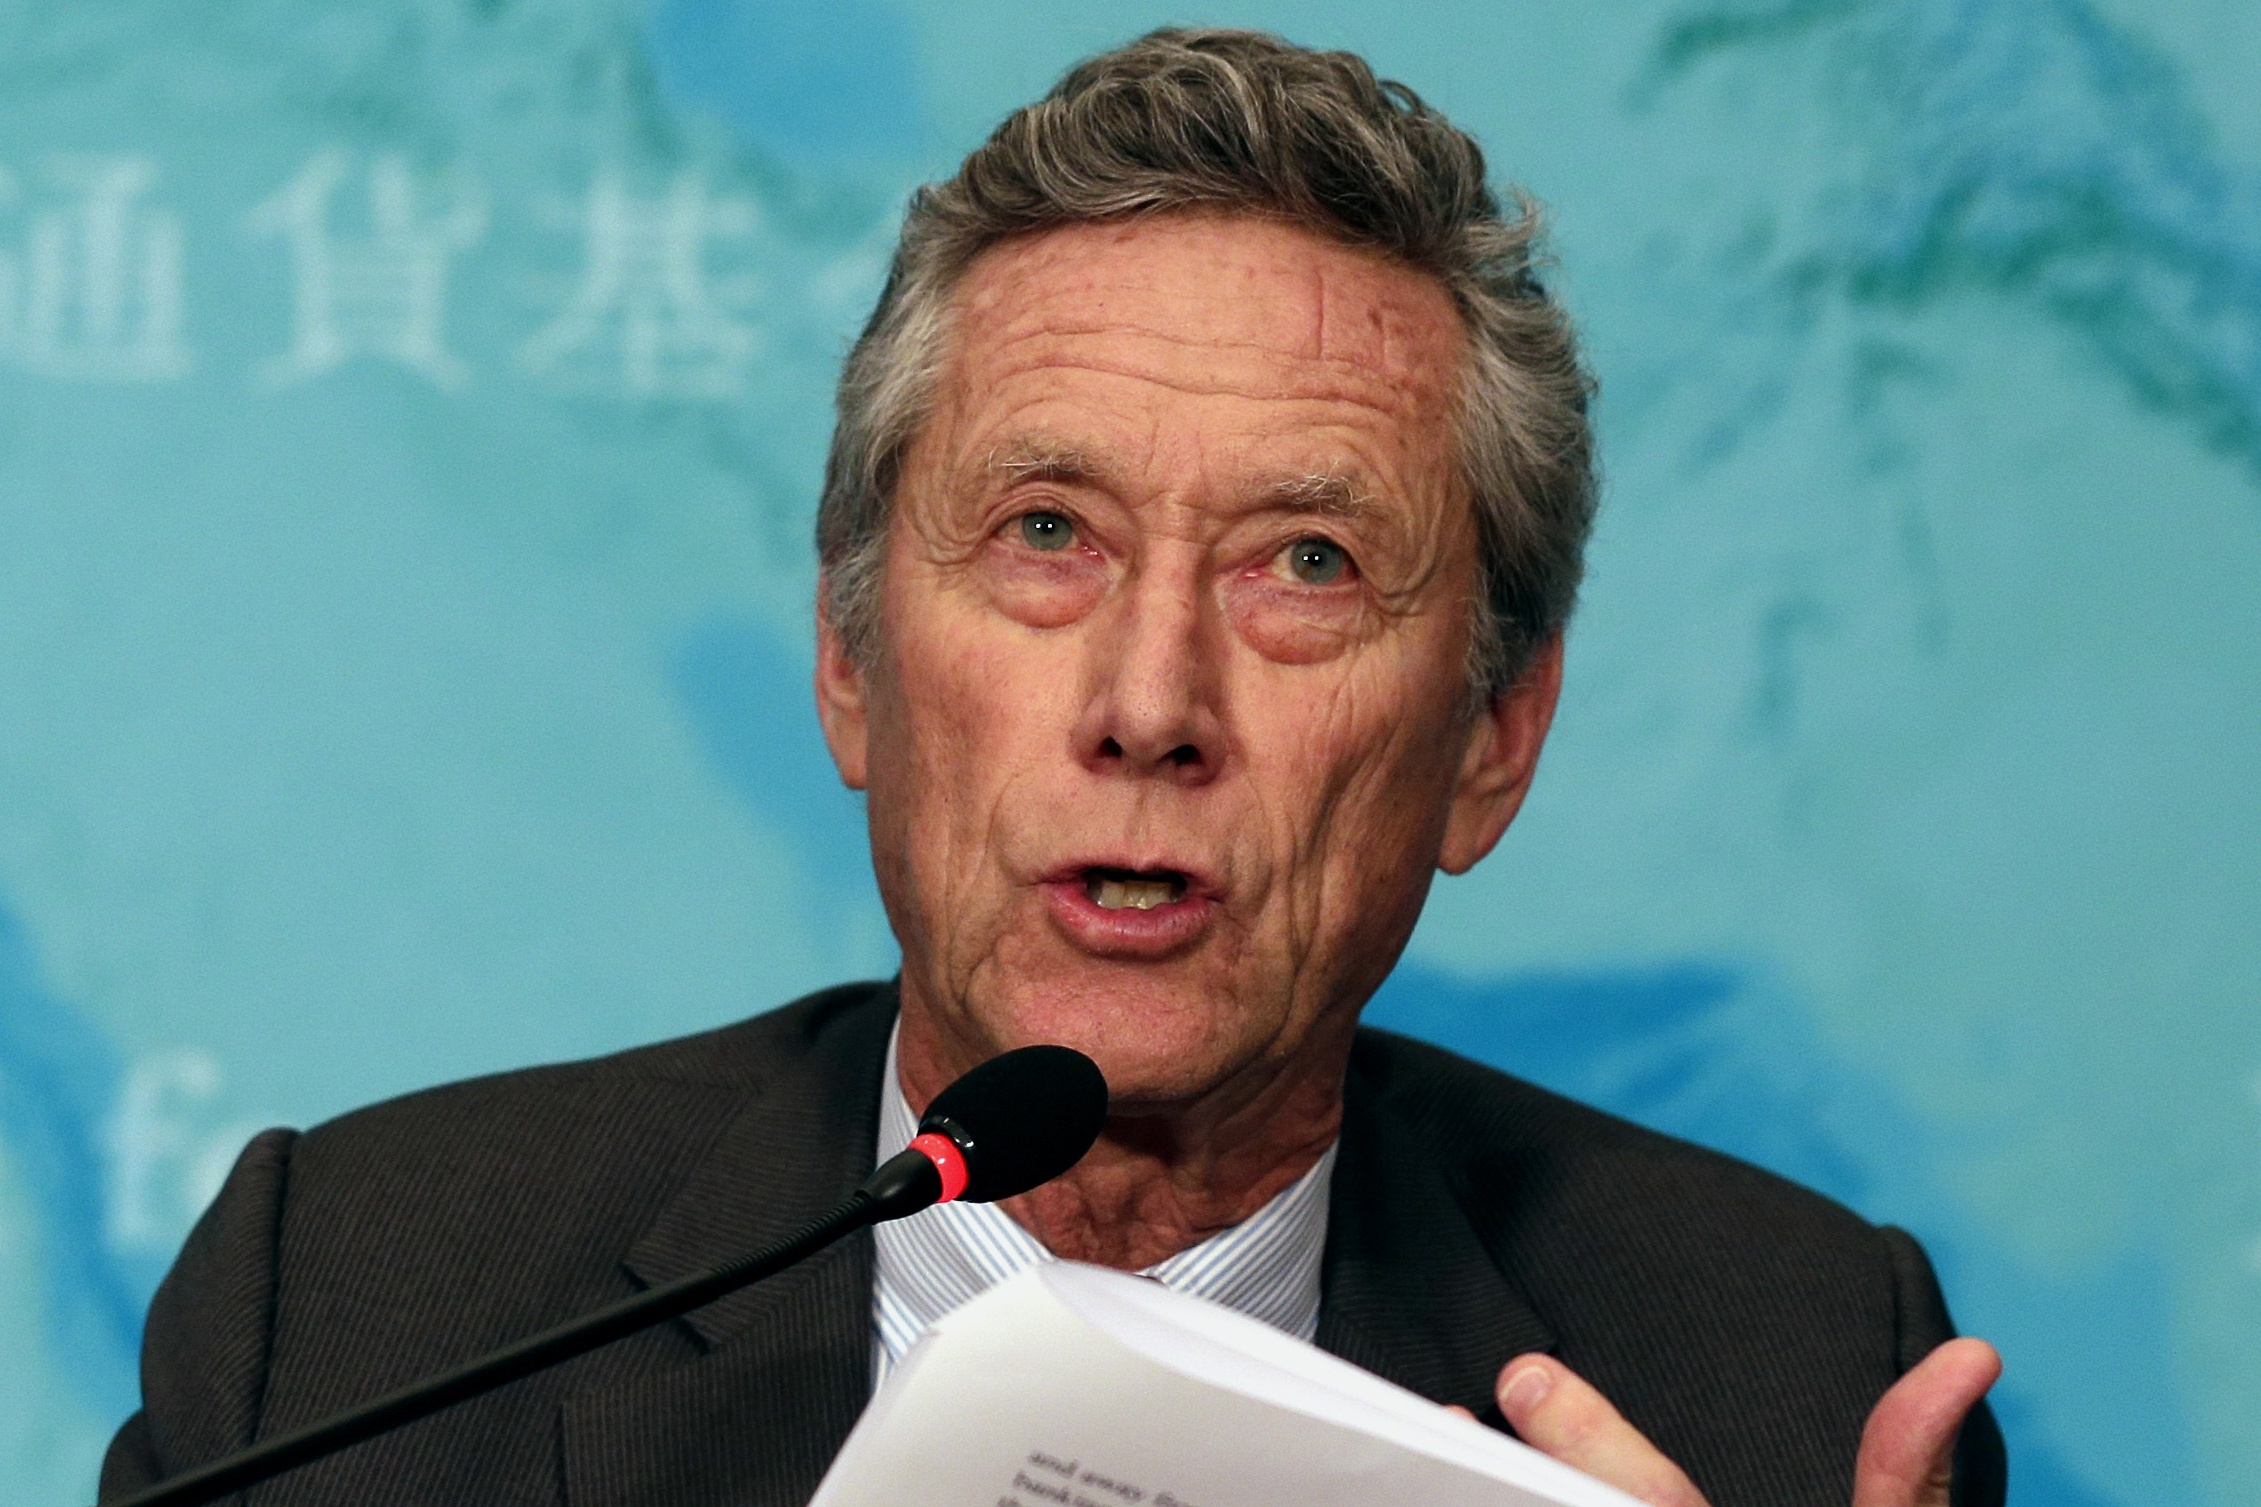 Olivier Blanchard speaks during a press briefing at a hotel in Beijing, China, Tuesday, January 20, 2015. (AP Photo/Andy Wong)